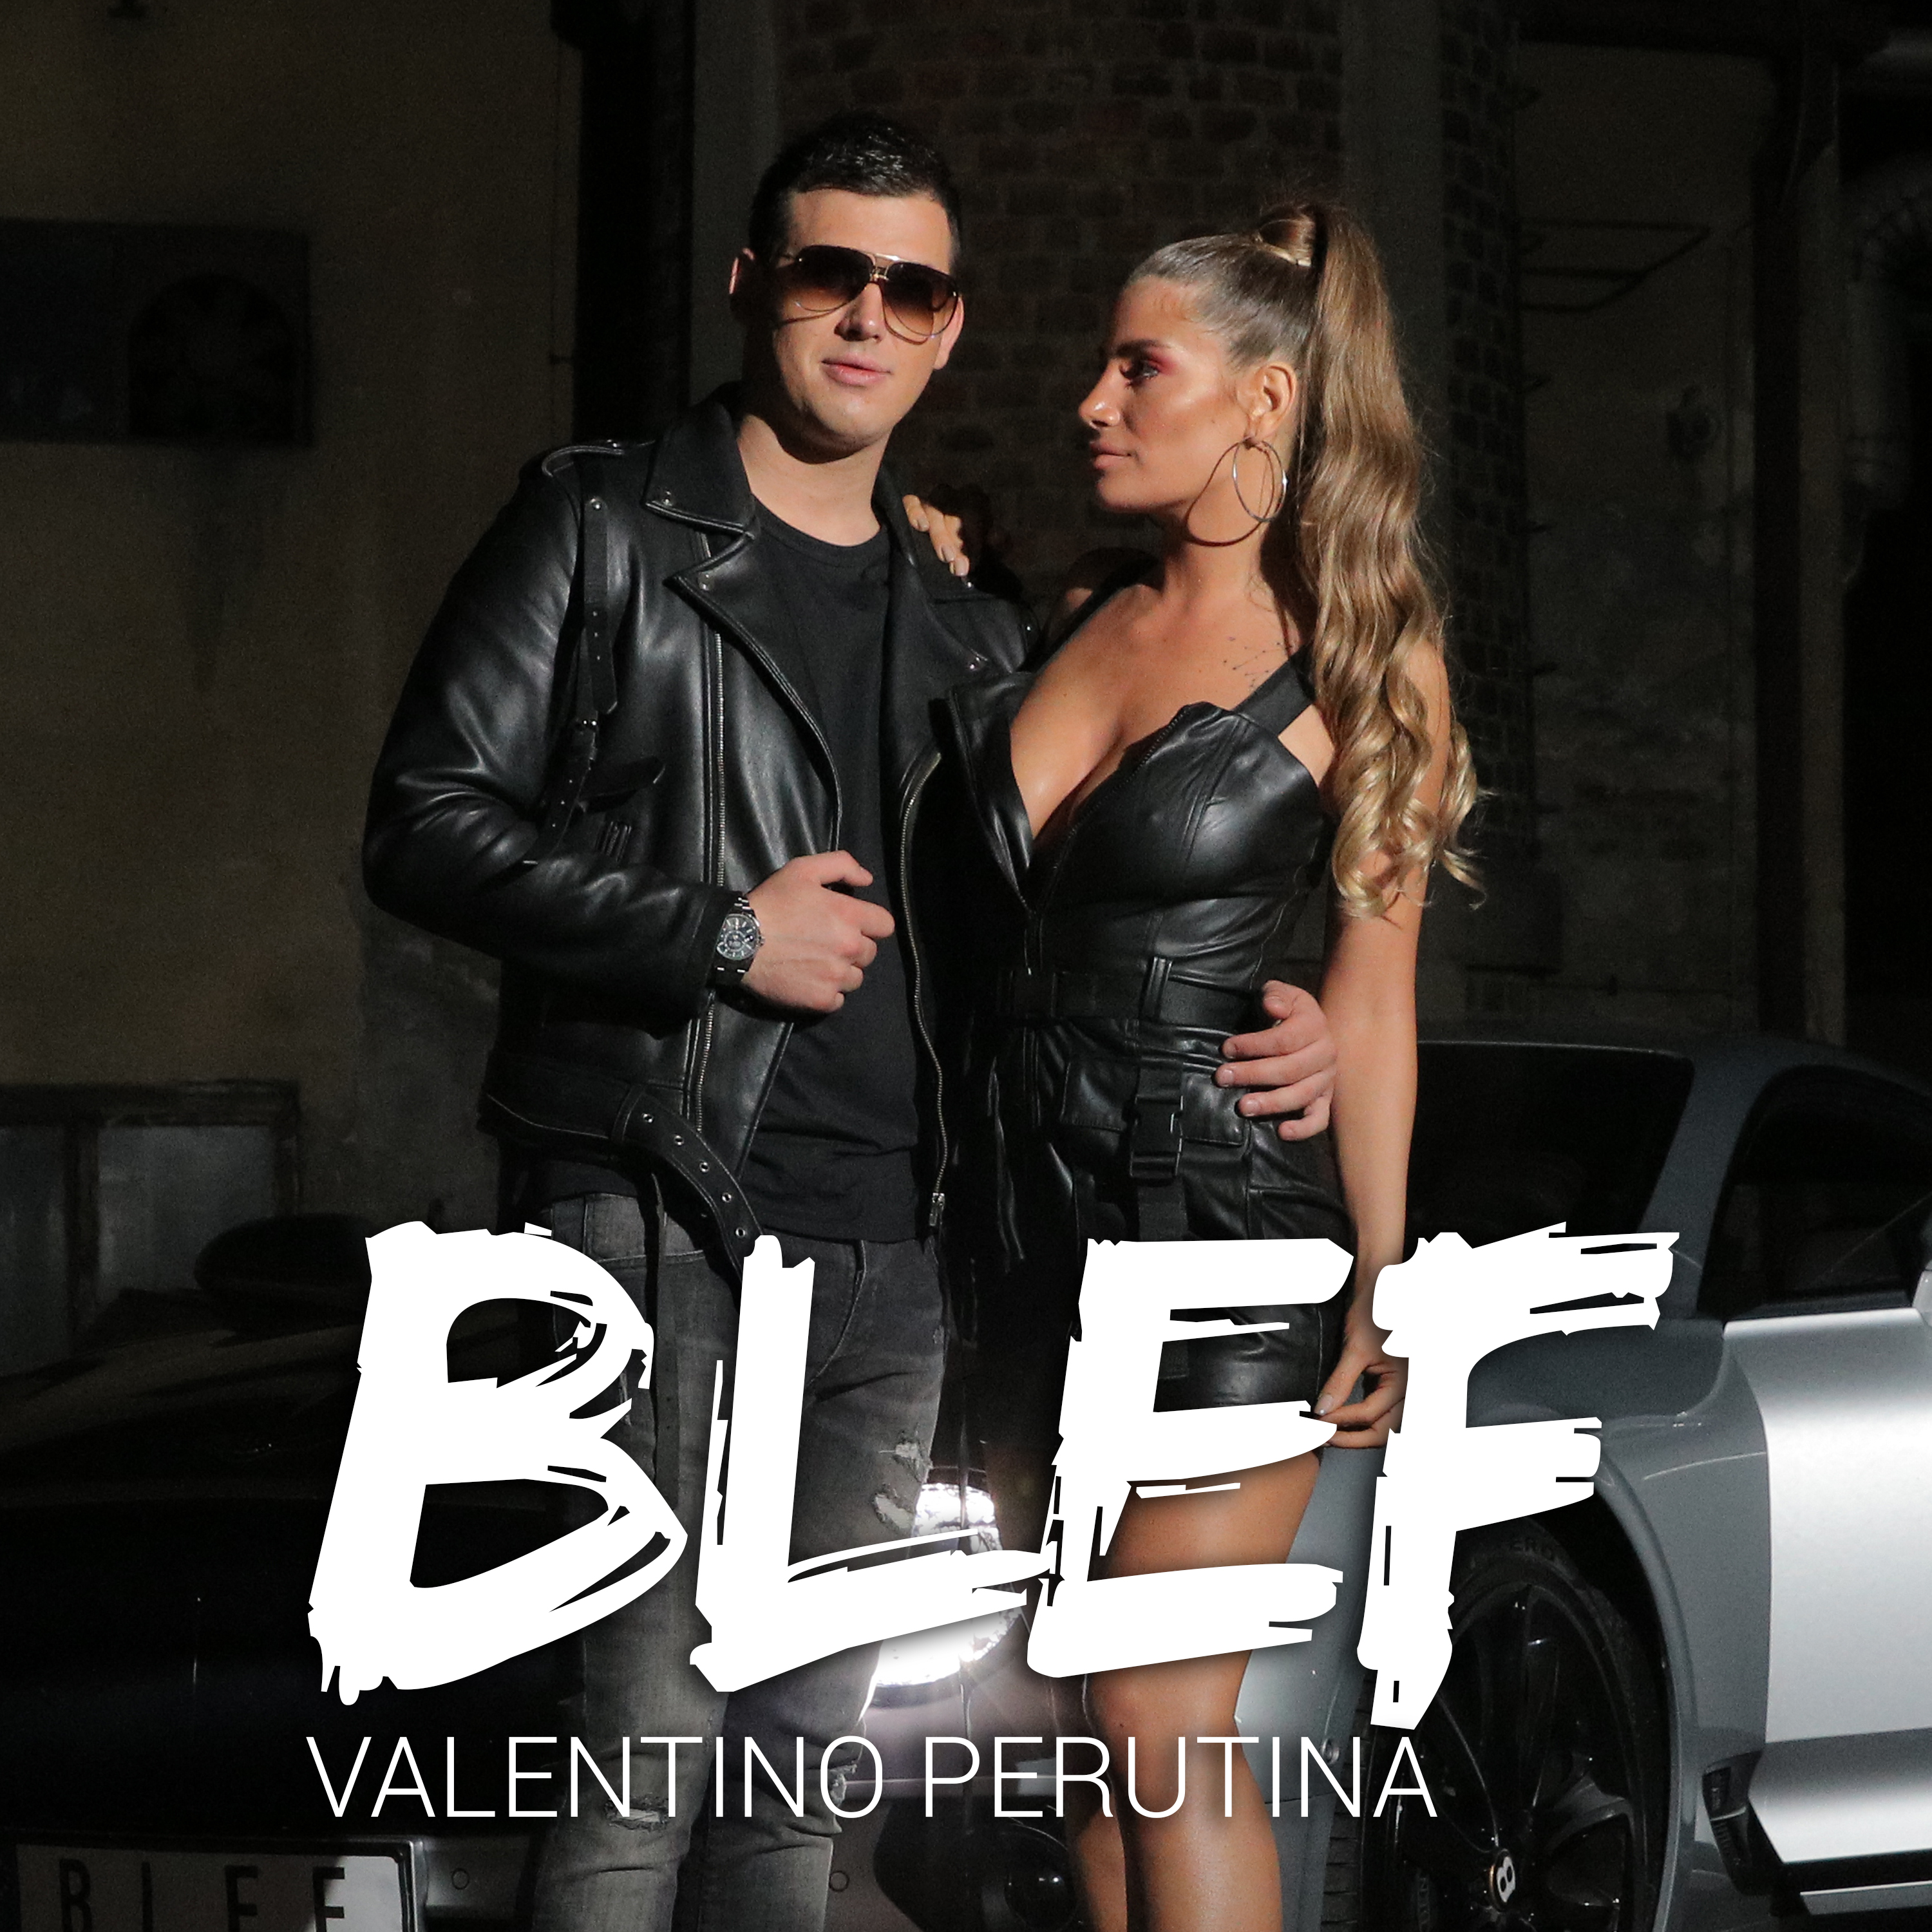 Valentino Perutina - Blef - Listen on Spotify, Deezer, YouTube, Google Play Music and Buy on Amazon, iTunes Google Play | EMDC Network